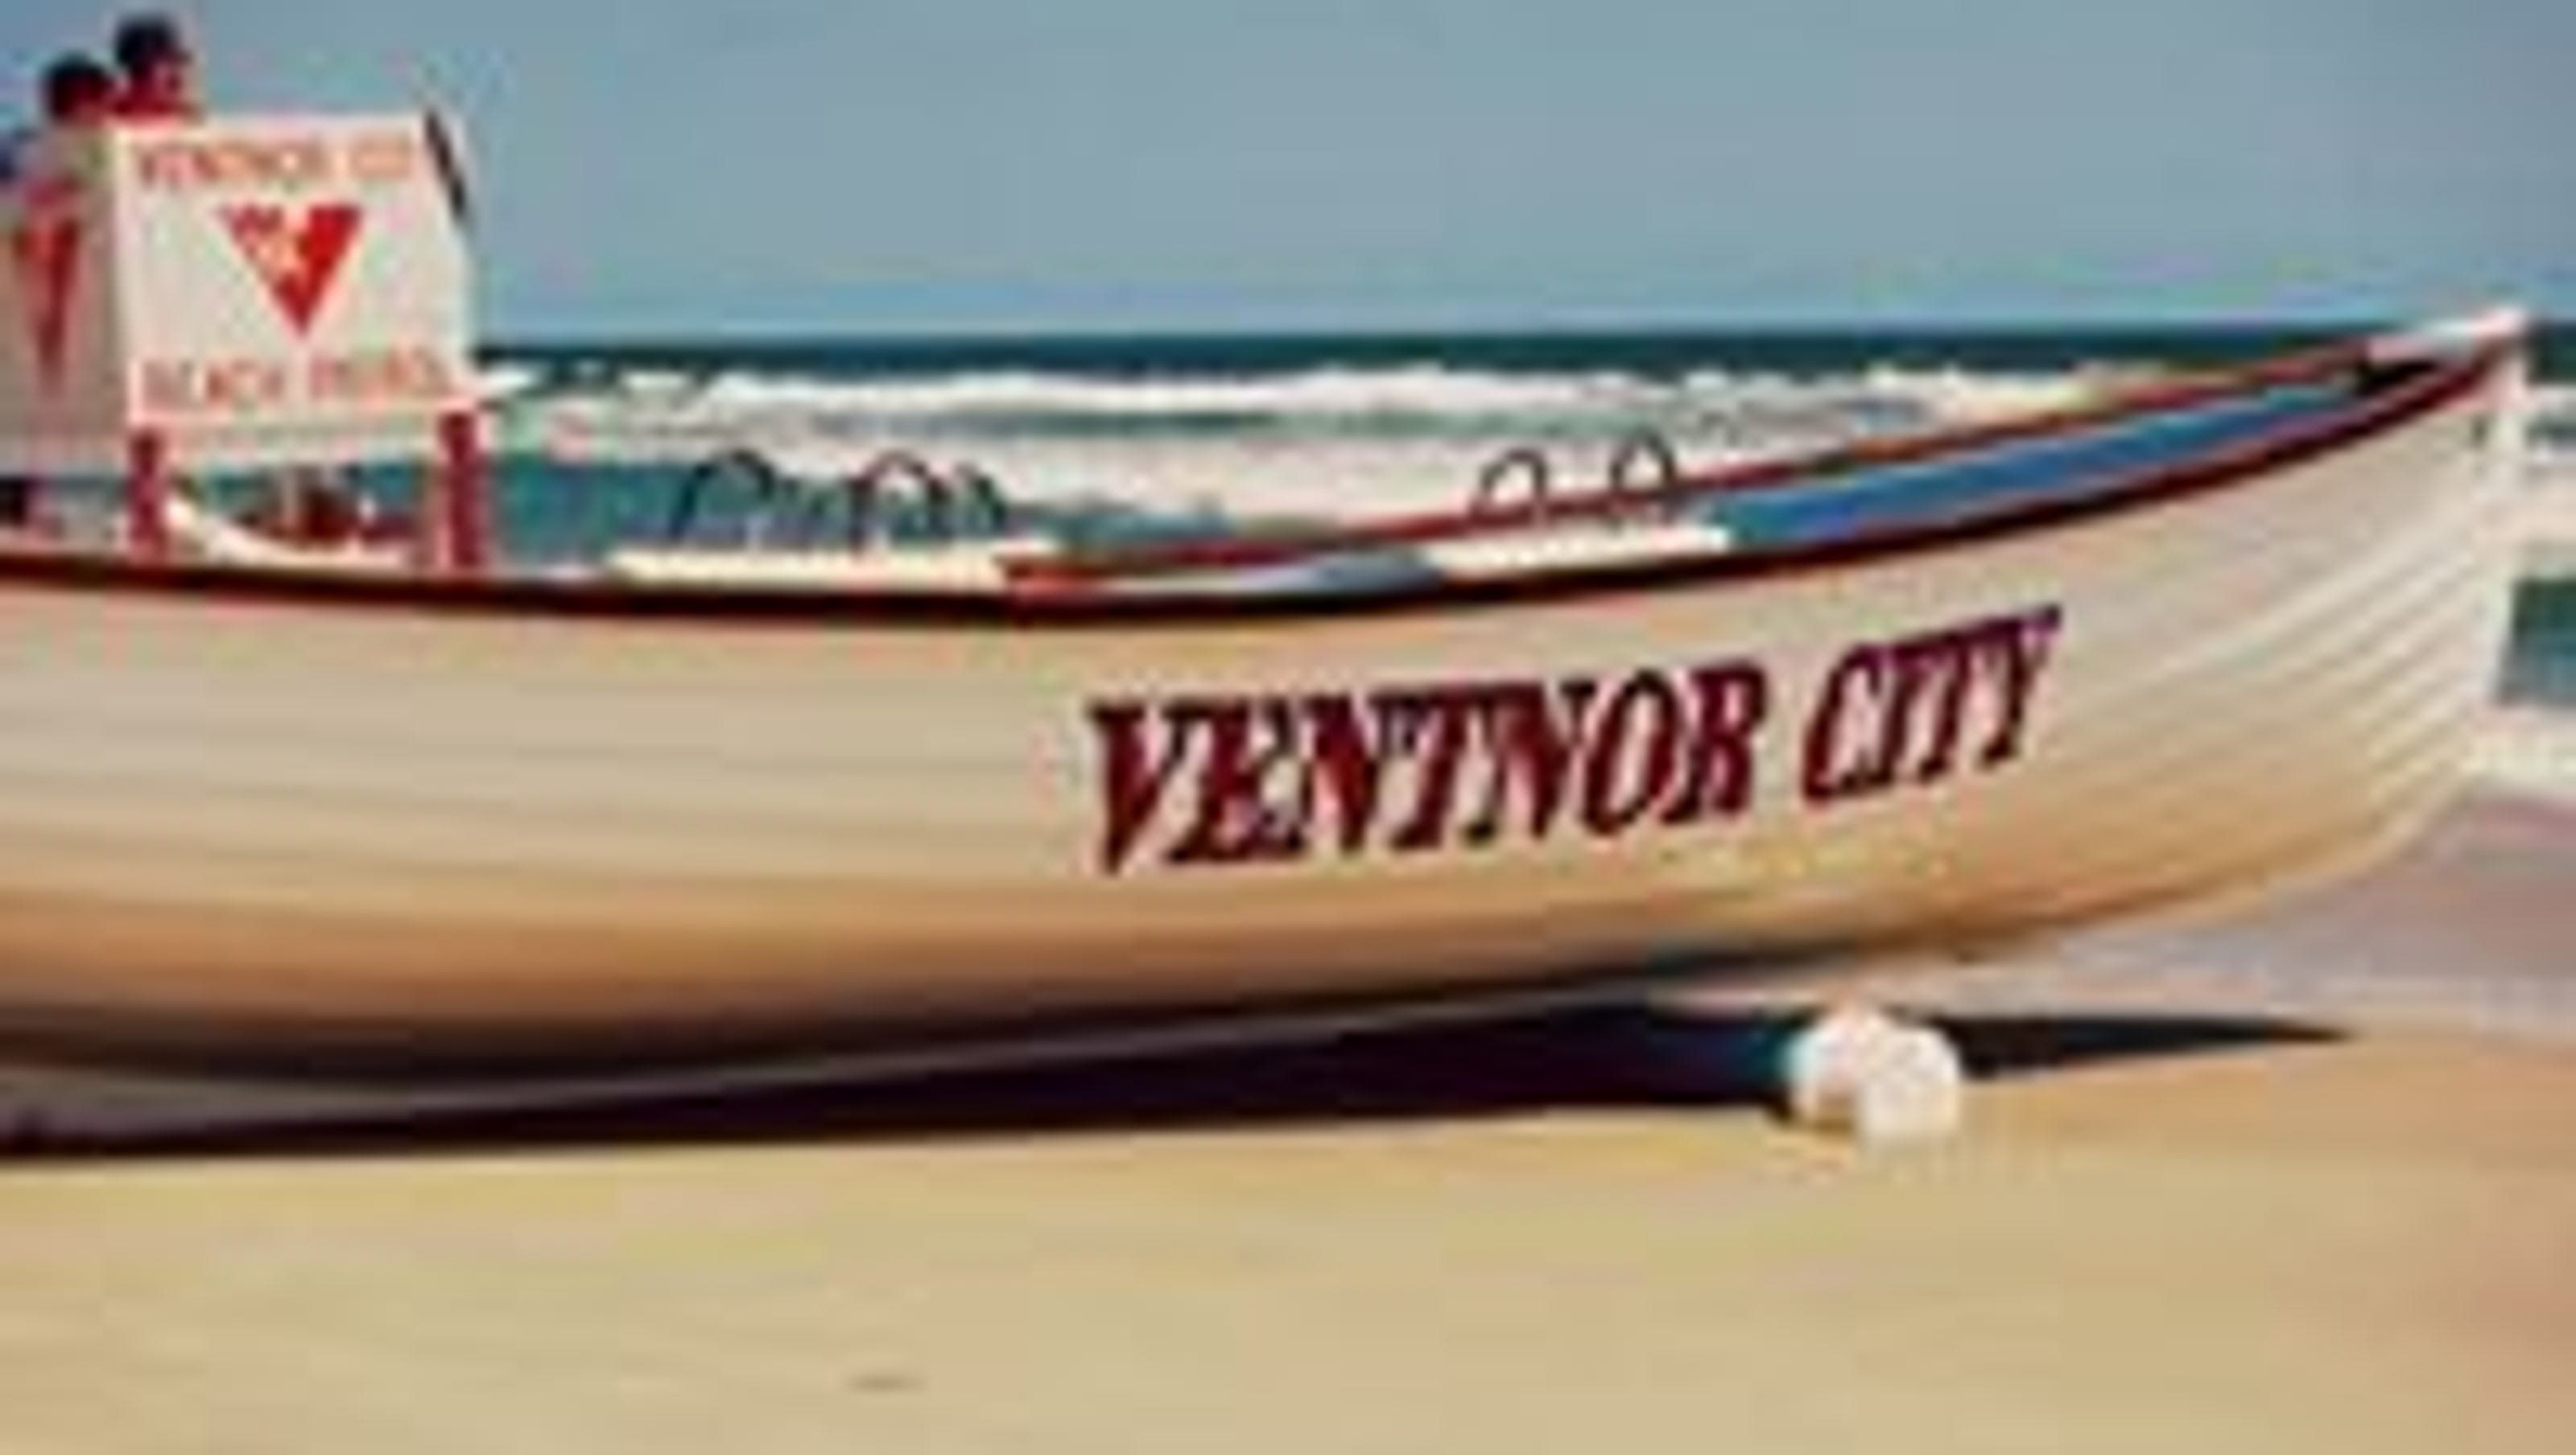 ventnor city chat Ventnor city, new jersey transitional housing  oxford house ventnor  chat let's talk: click to chat call now:.